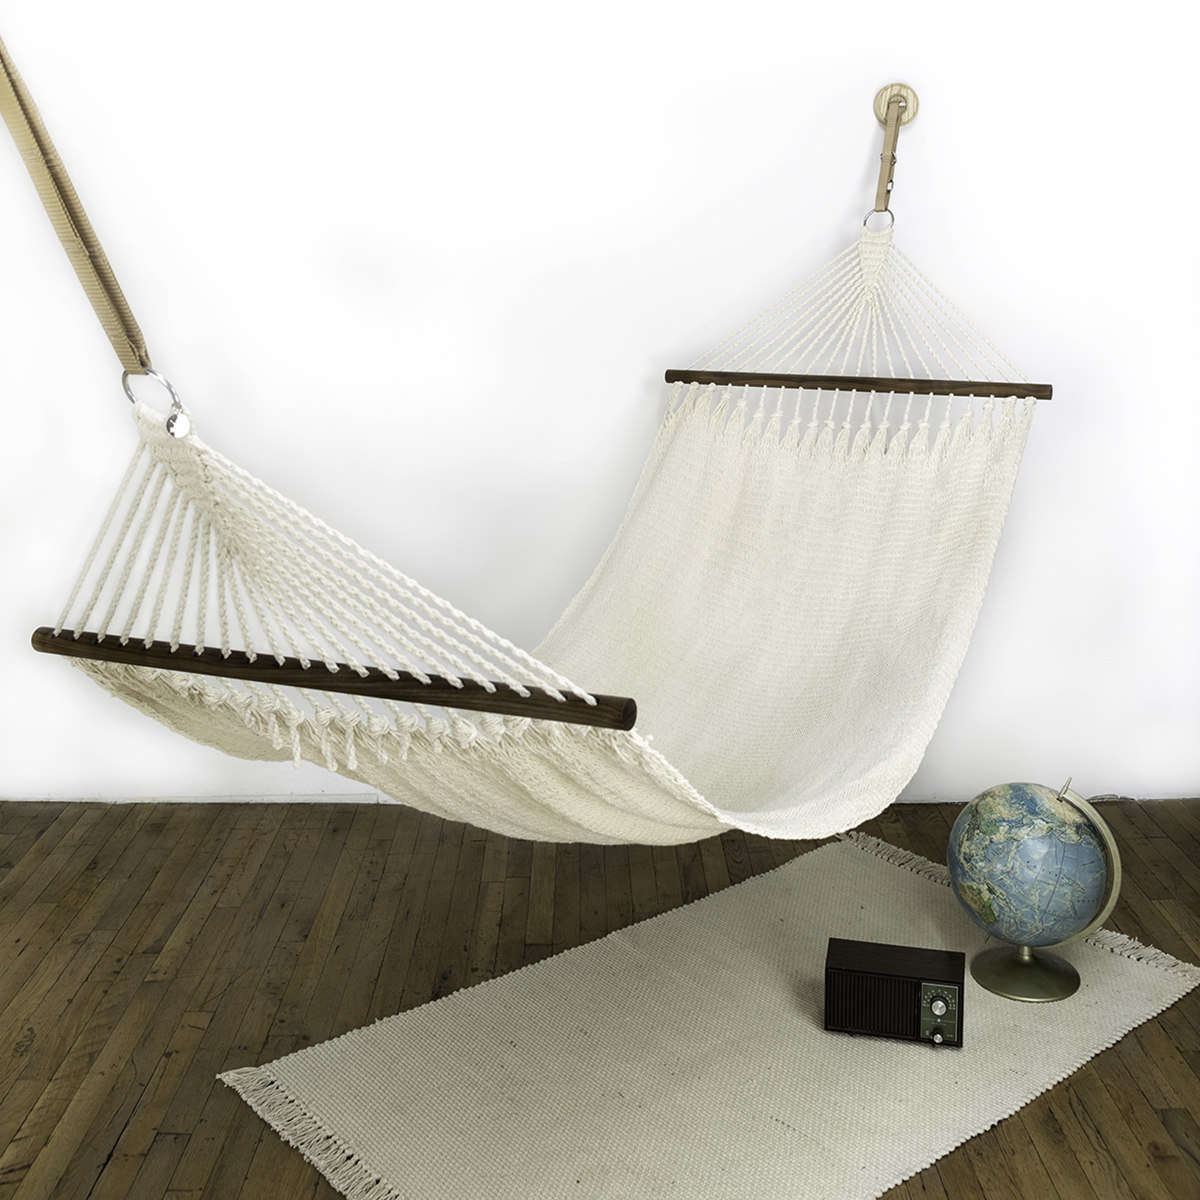 Julie discovered these cool Brooklyn-by-way-of-El-Salvador hammocks at Field + Supply last week. We approve. See Summery (and Chic) Hammocks from Nudo Handmade.